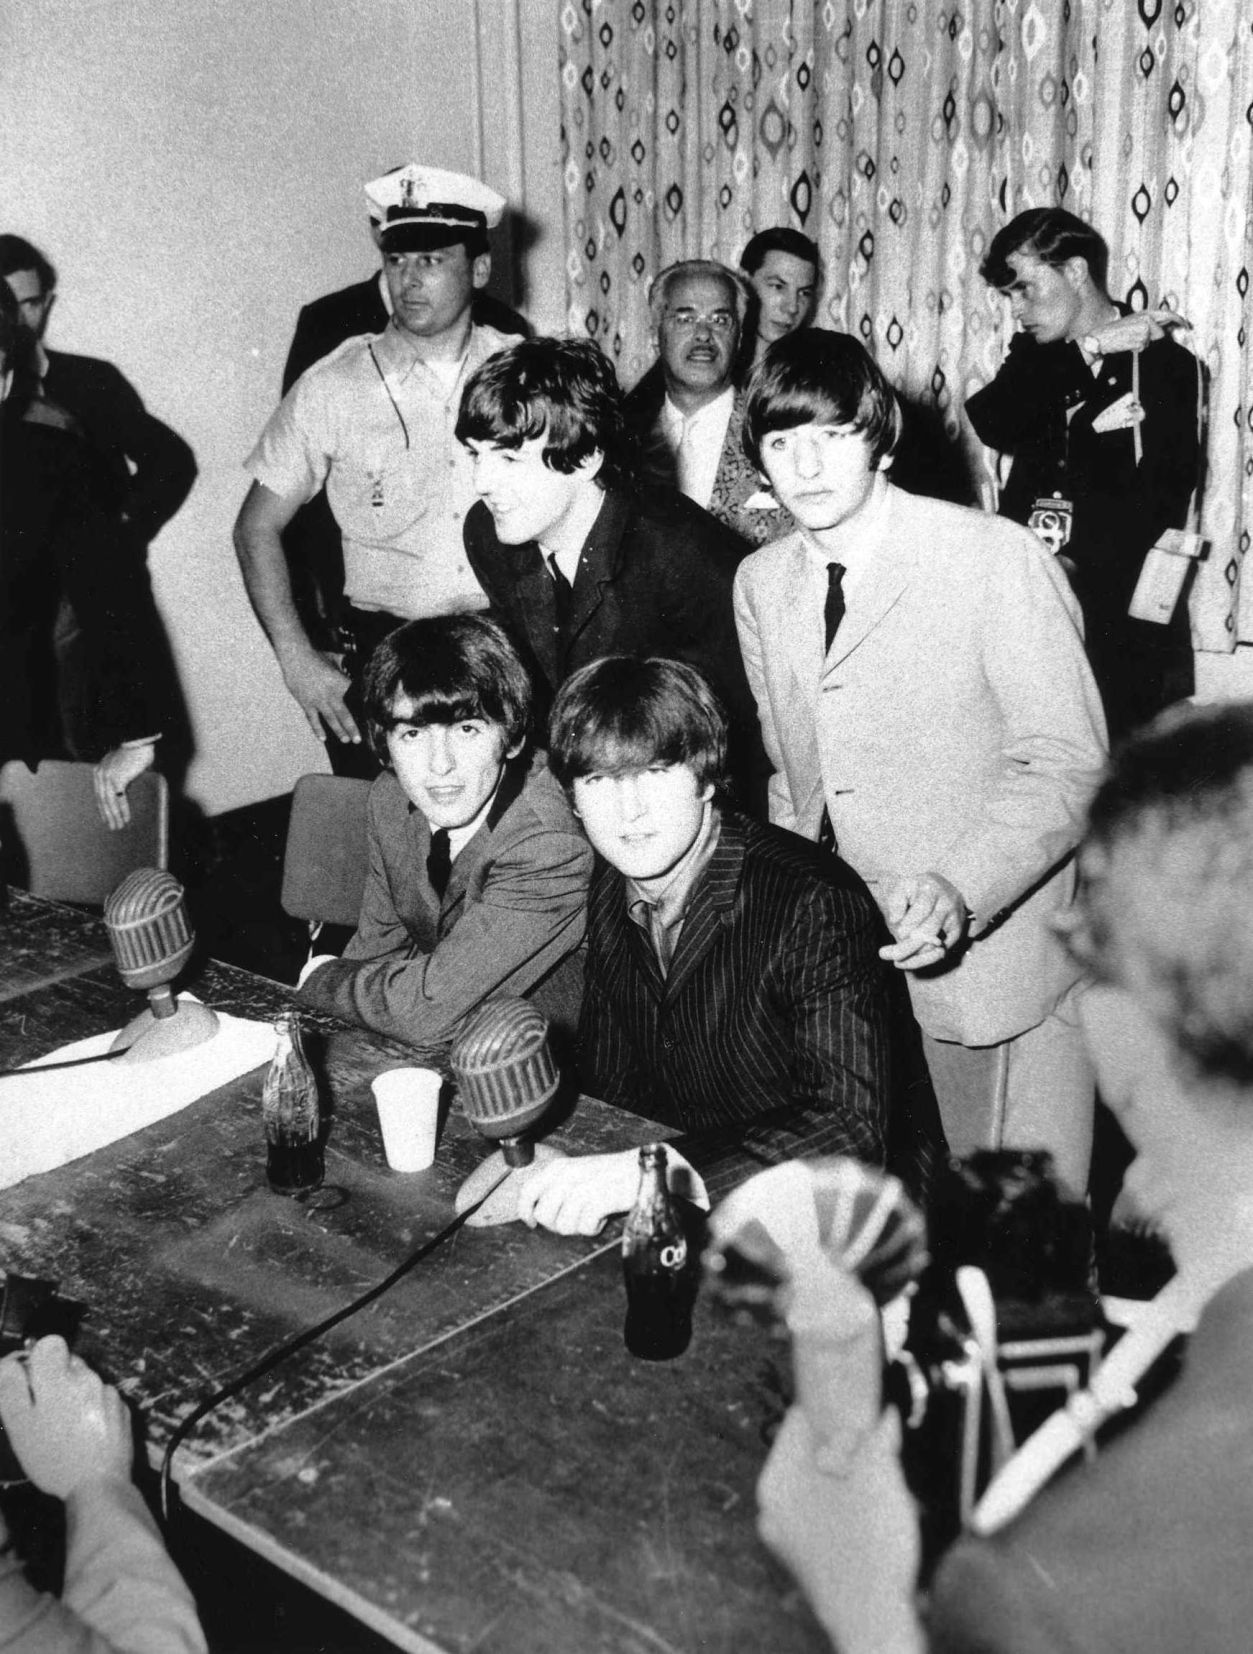 August 1964 The Beatles Hold A Giant Sub From The White House Sub Shop During Their Stay In Atlantic City For A Concert Press Of Atlantic City File Photo His